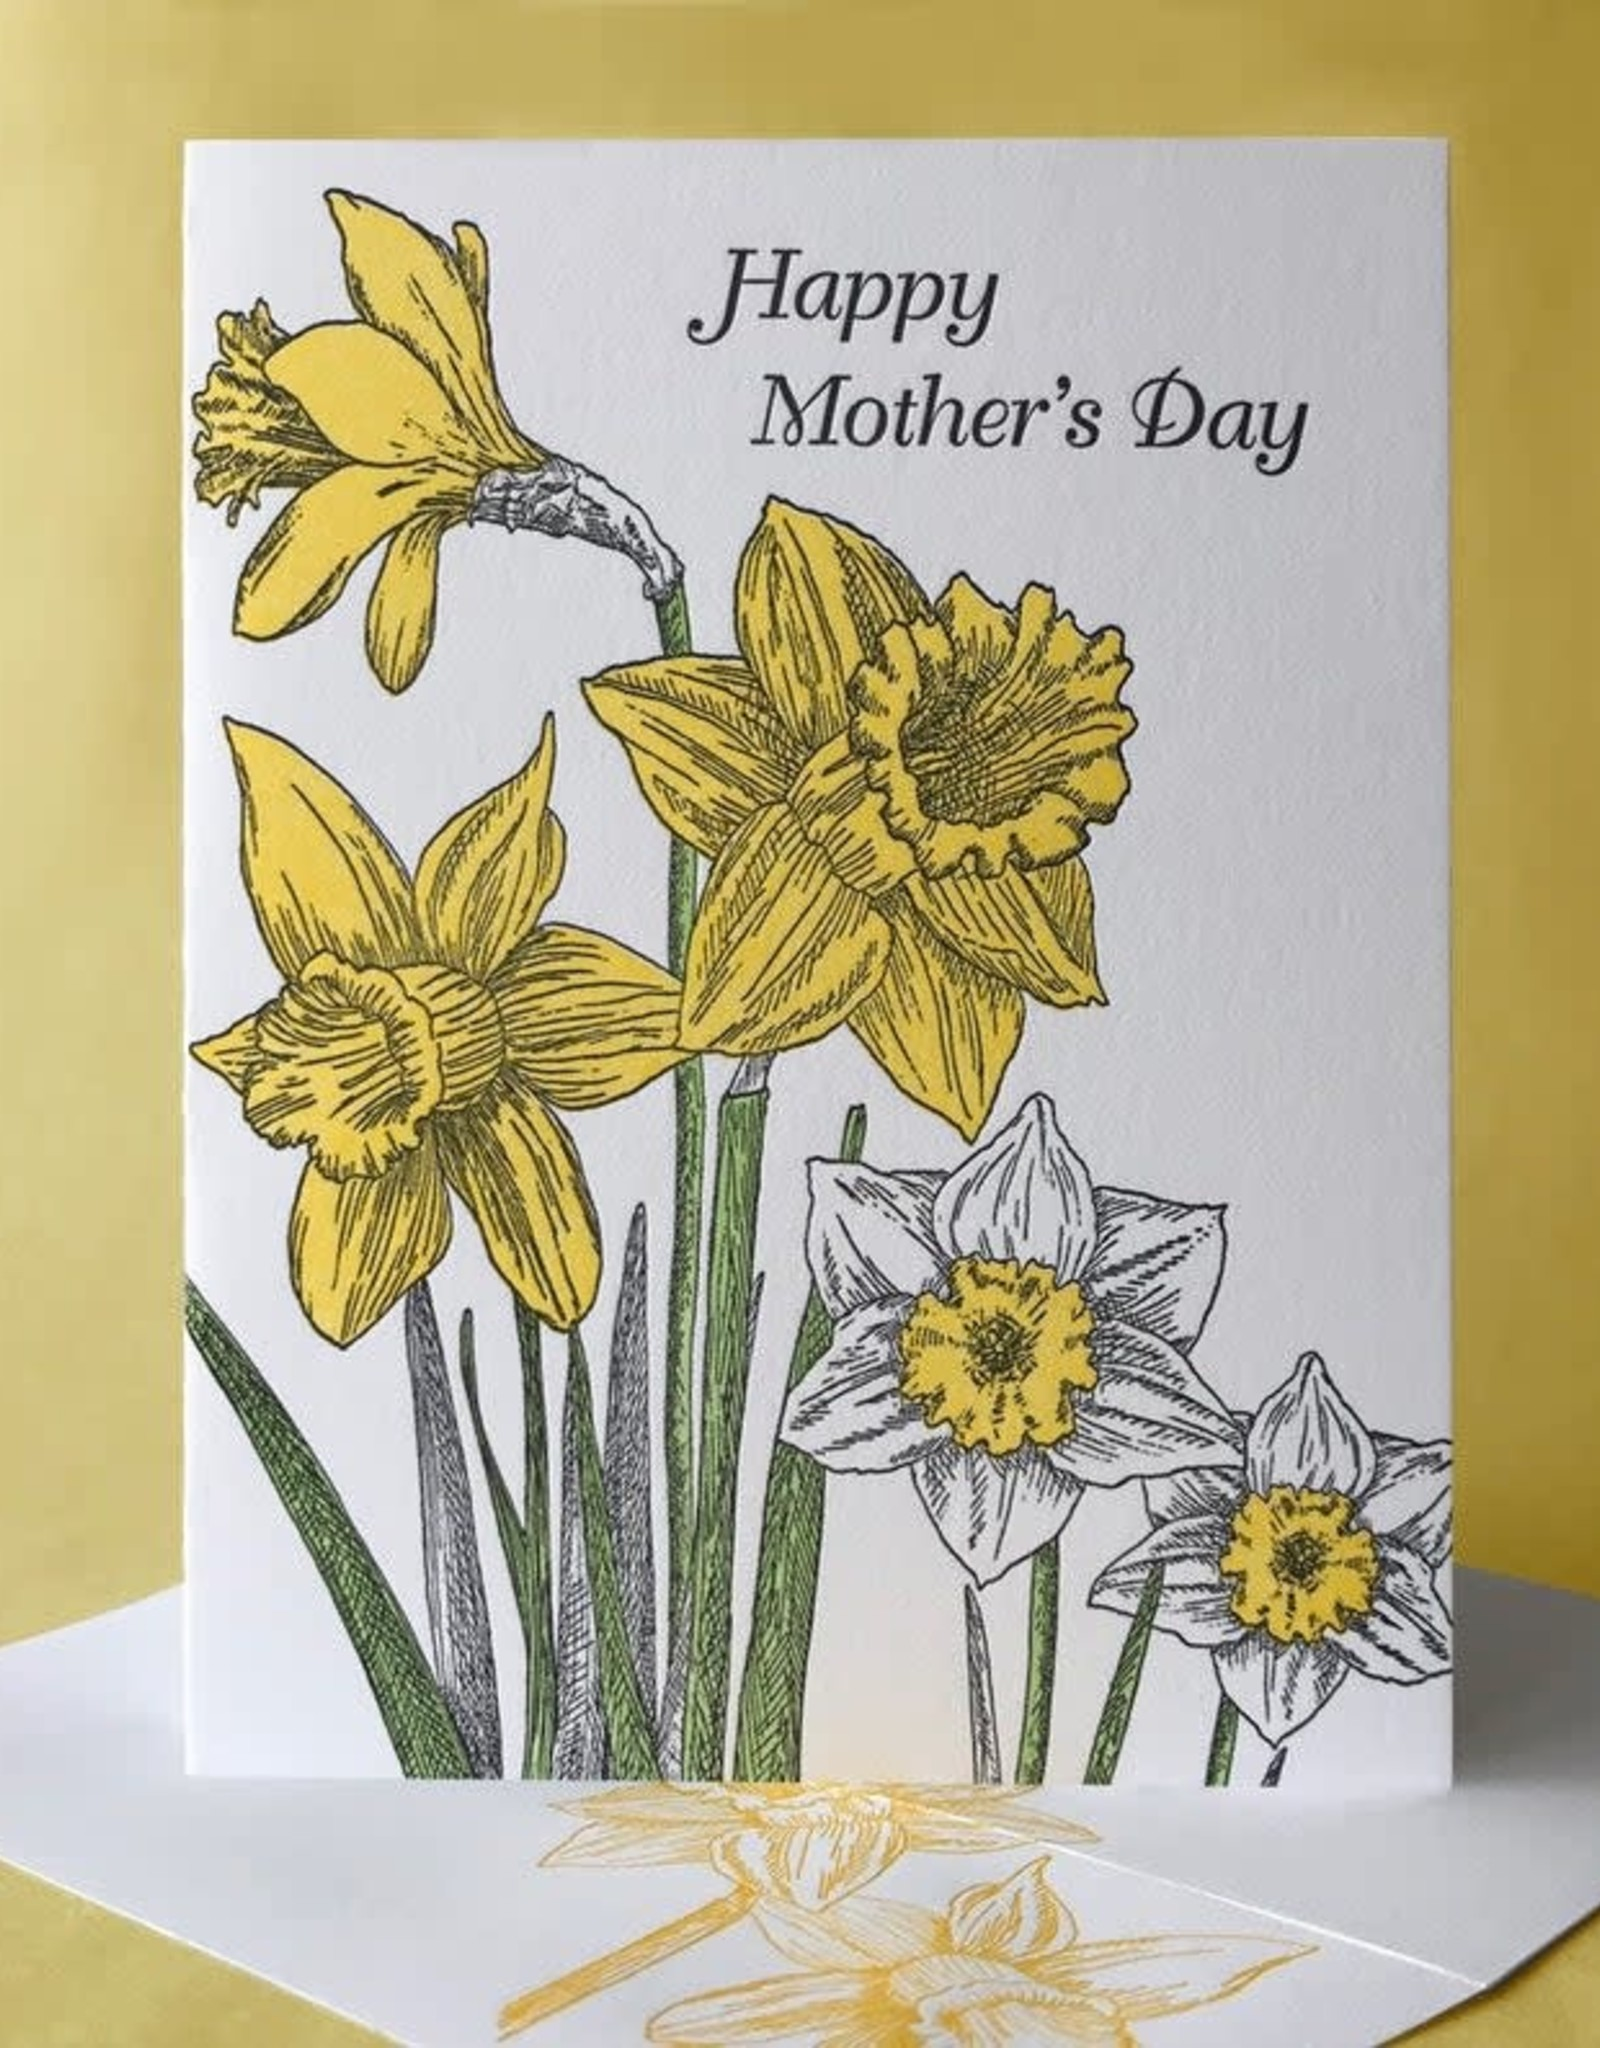 Happy Mother's Day (Daffodil) Greeting Card